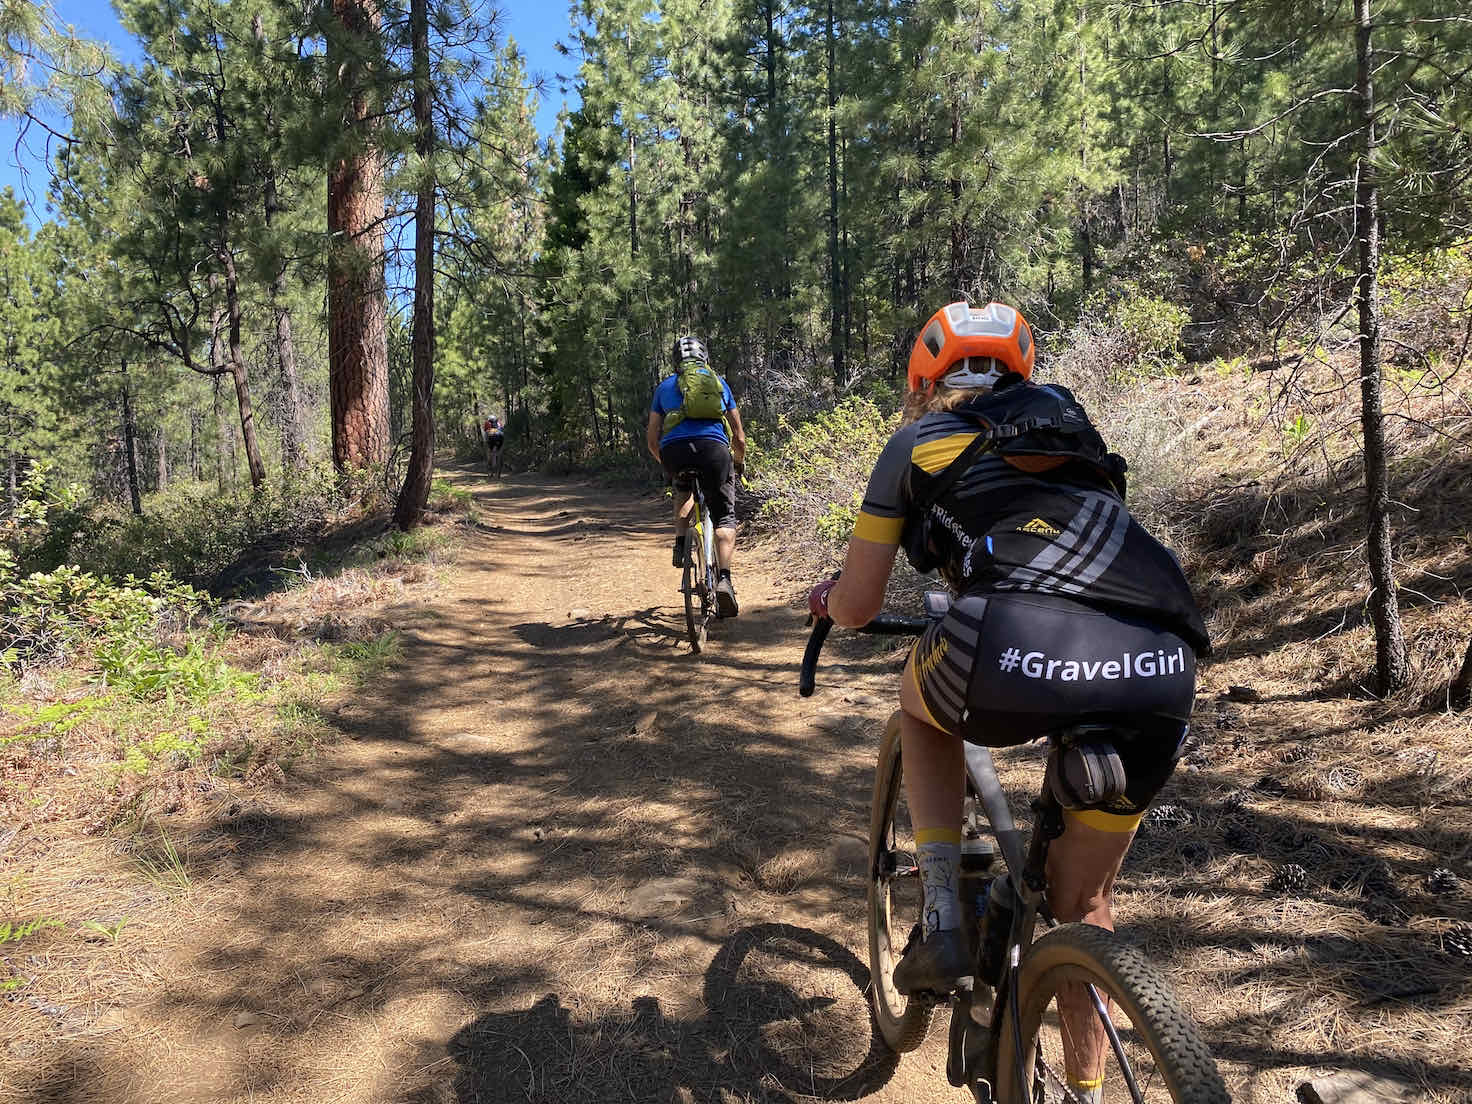 Gravel cyclists riding the forest service roads around Black Butte,.